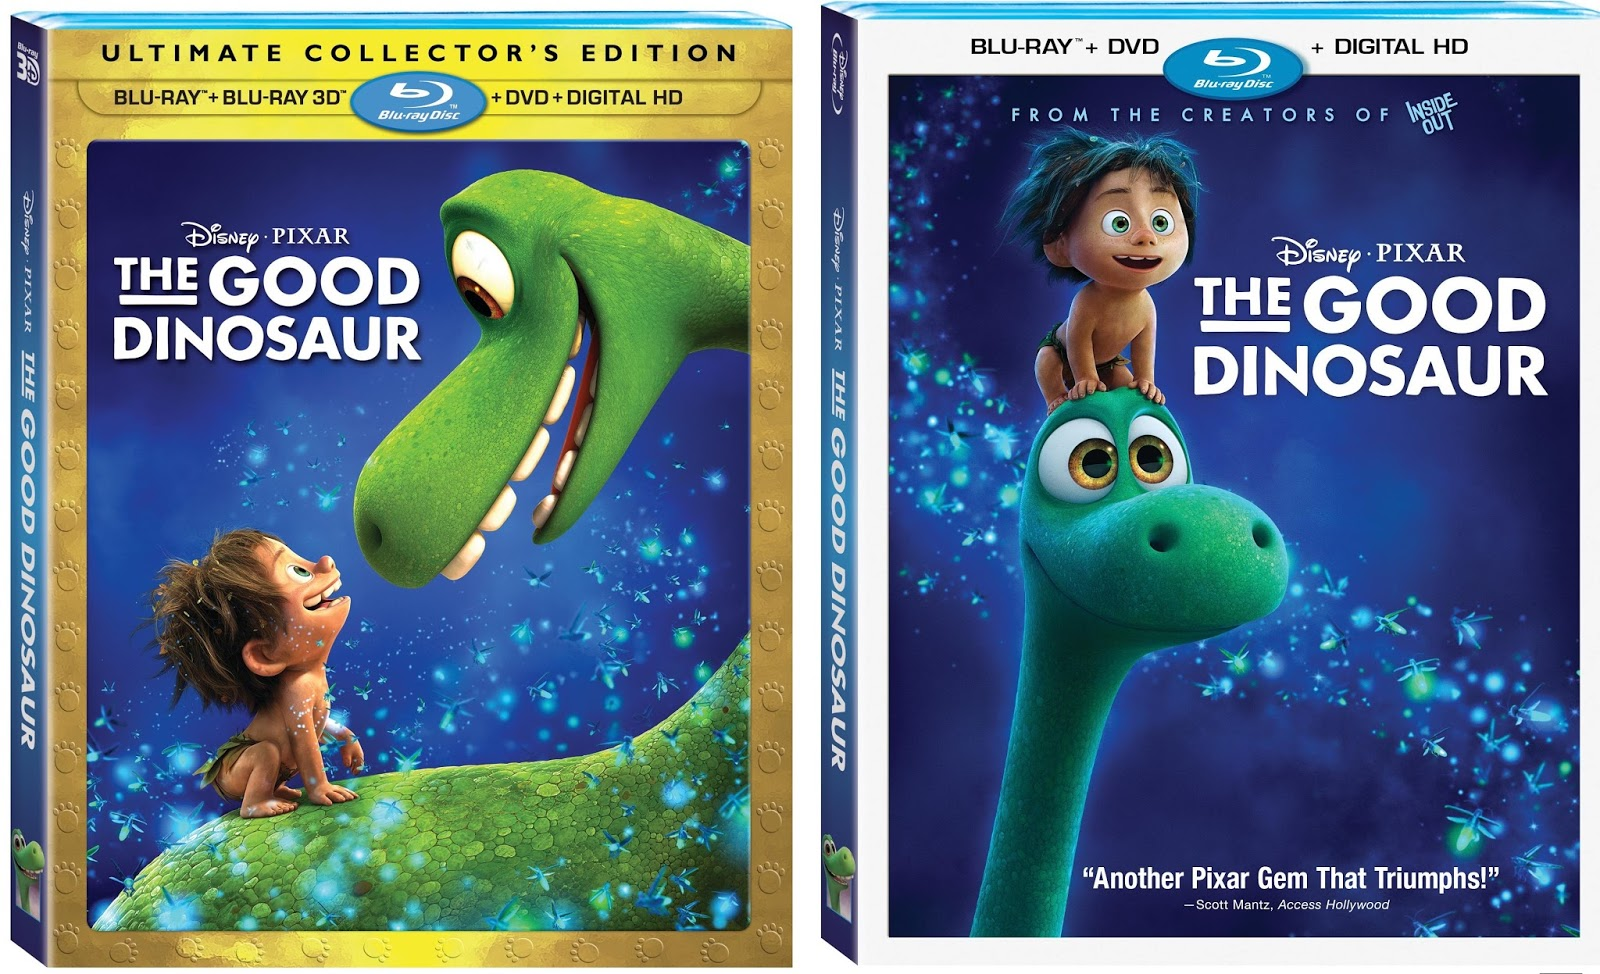 The Good Dinosaur Blu Ray Dvd Digital Review It S